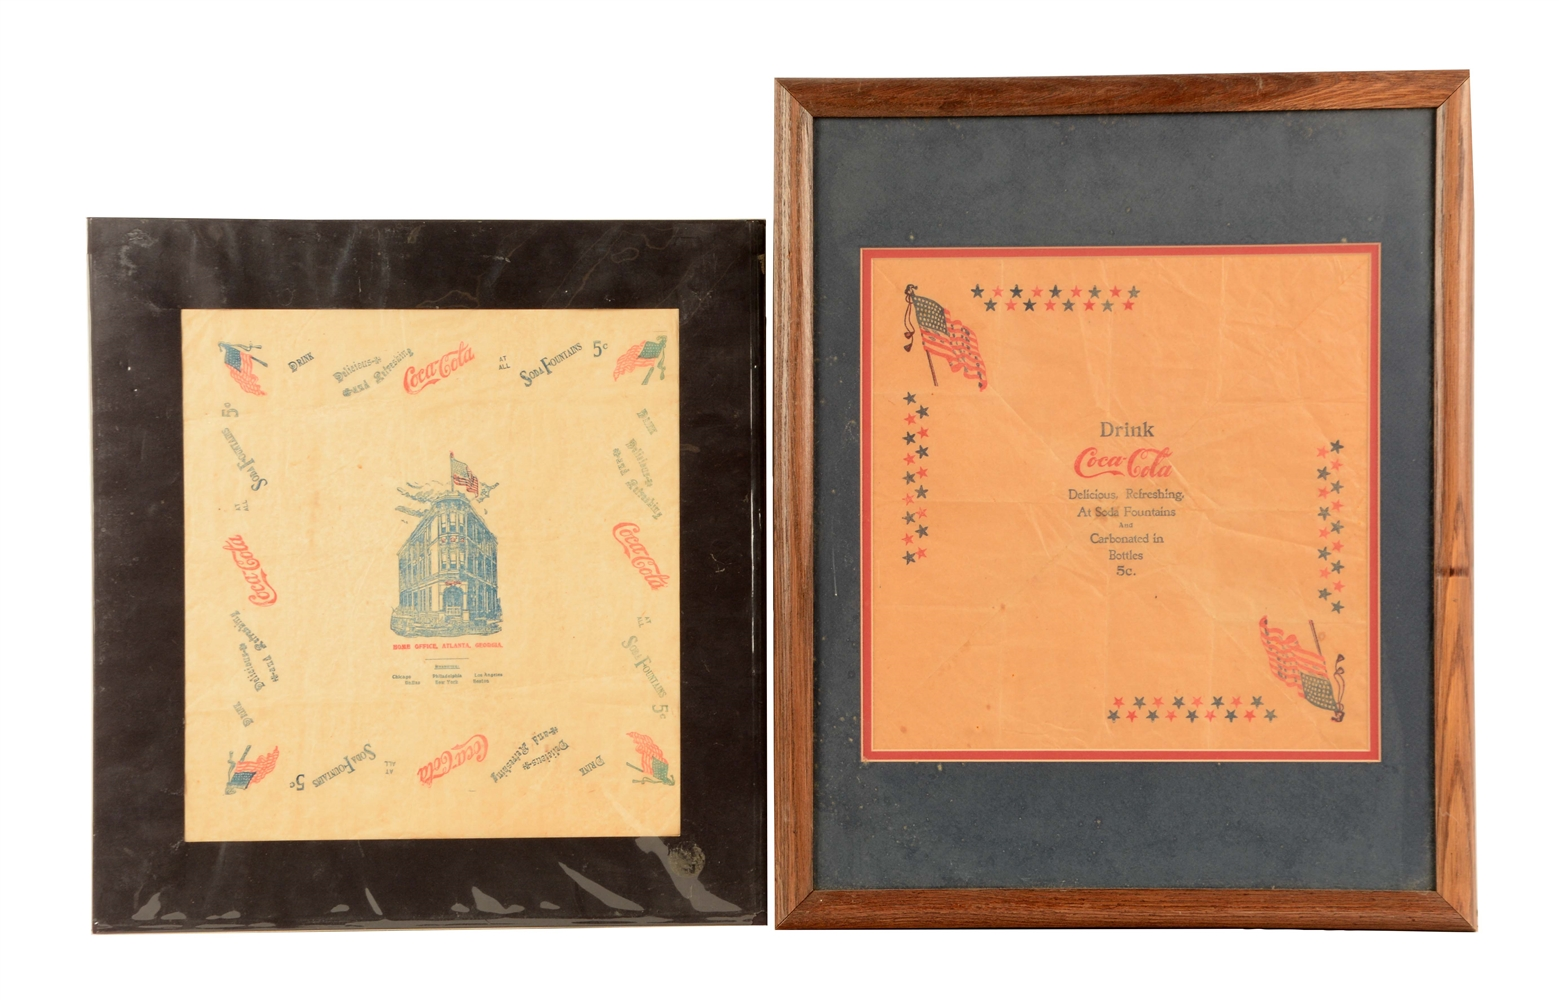 Lot Of 2: Early Coca-Cola Advertising Napkins.